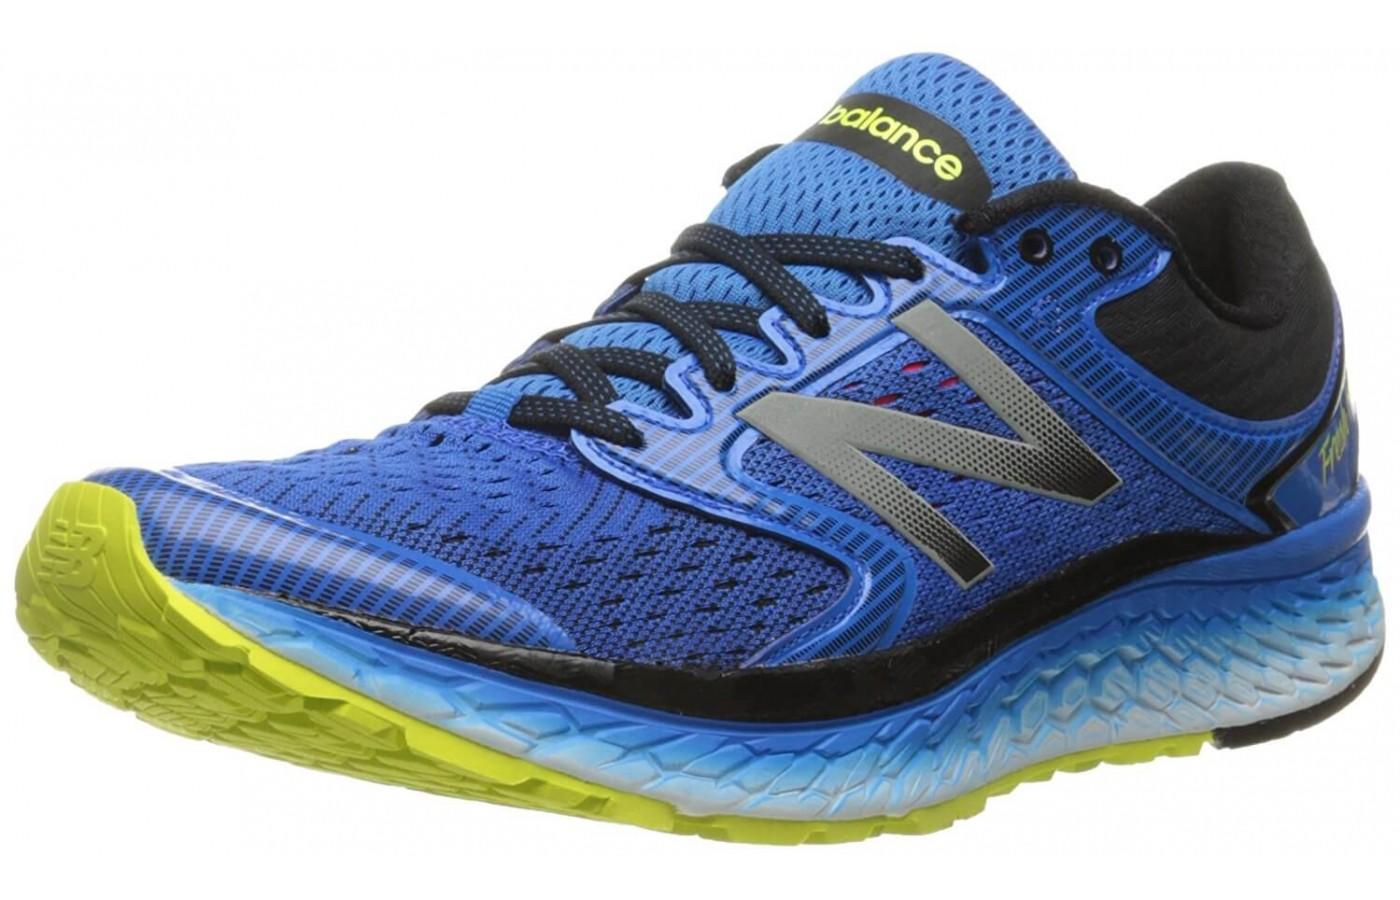 quality design d9180 76420 The New Balance Fresh Foam 1080 v7 ...